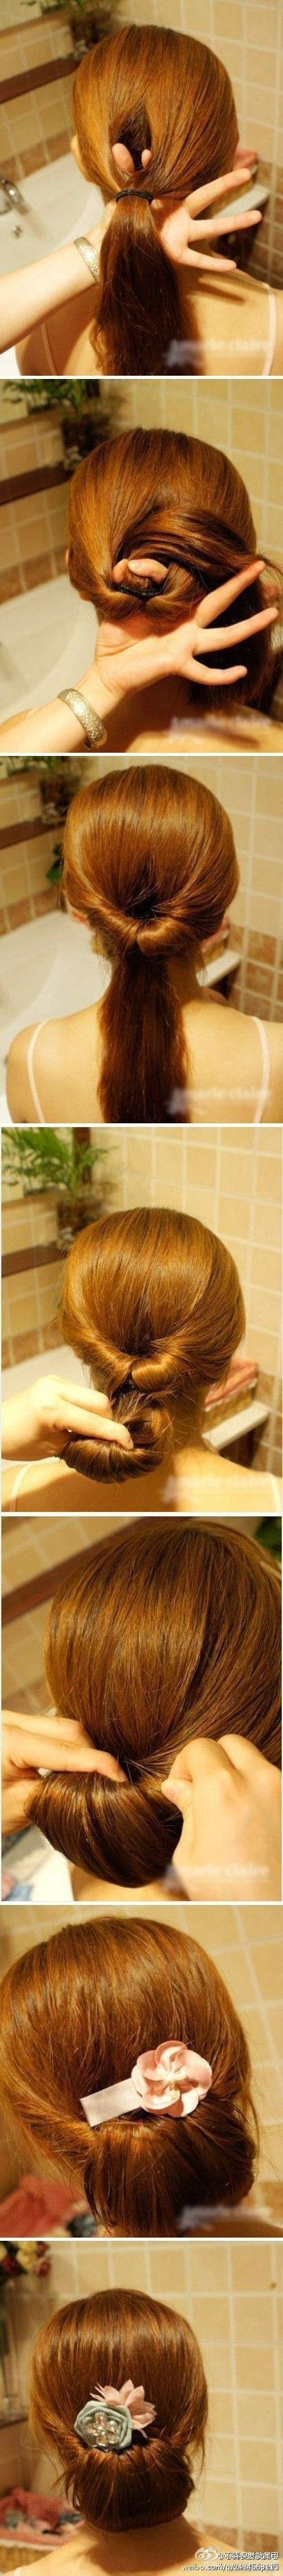 .: Hair Ideas, Hairstyles, Hair Styles, Hairdos, Makeup, Hair Tutorial, Updos, Hair Do, Low Bun